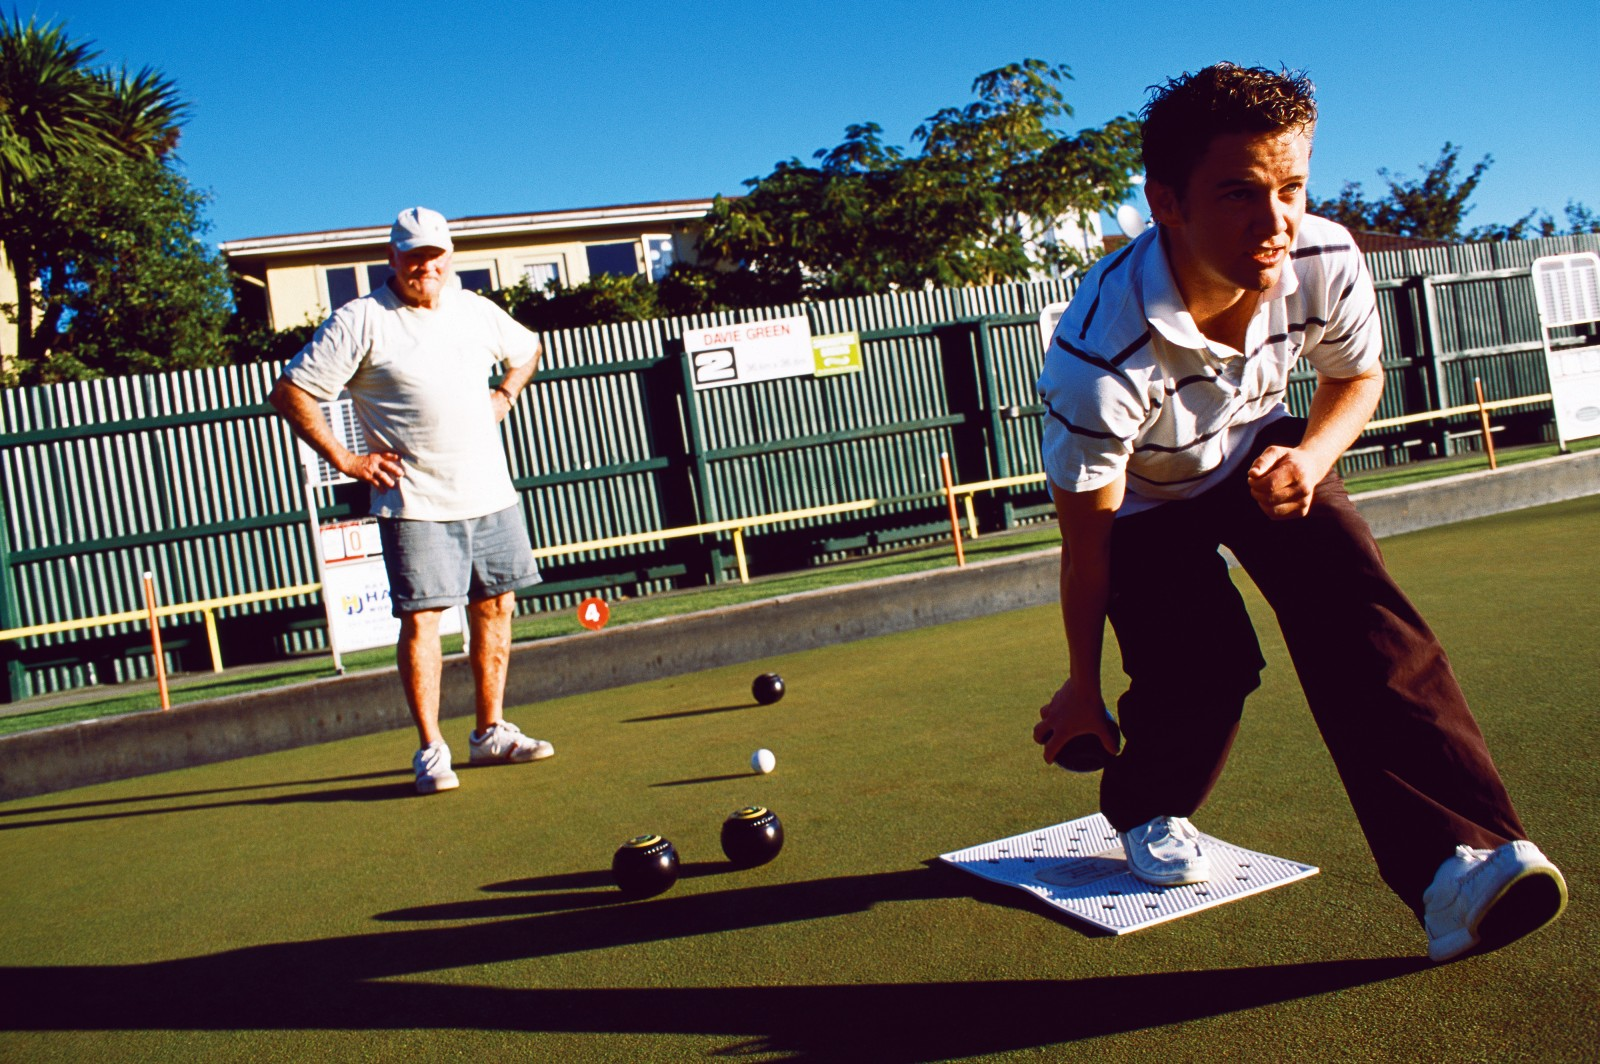 Bowler Luke Rhind from Karamea, an active proponent of the Mates in Bowls initiative, takes his turn at the Burnside Bowling Club.